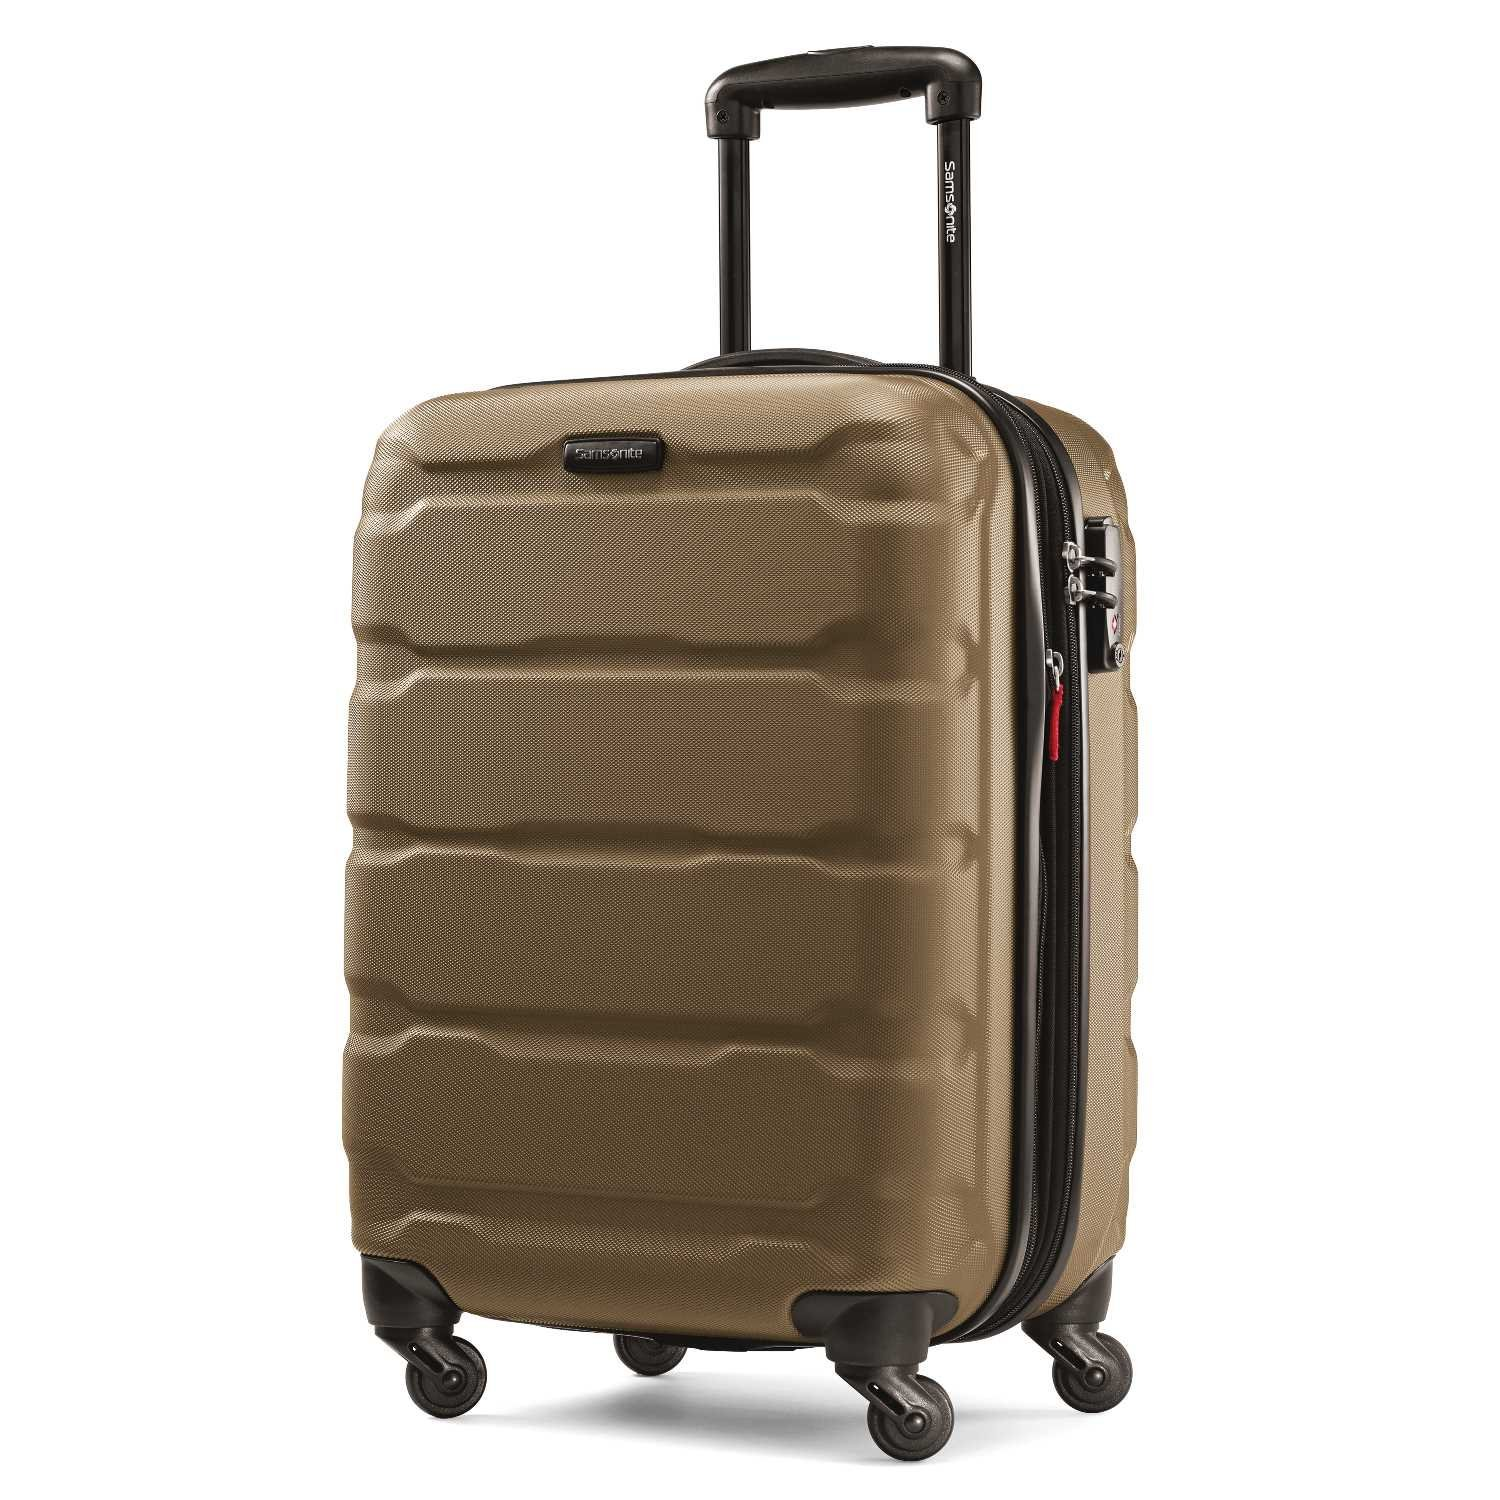 Samsonite Omni Pc Hardside Spinner 20, Burnt Orange Samsonite Corporation 68308-1156